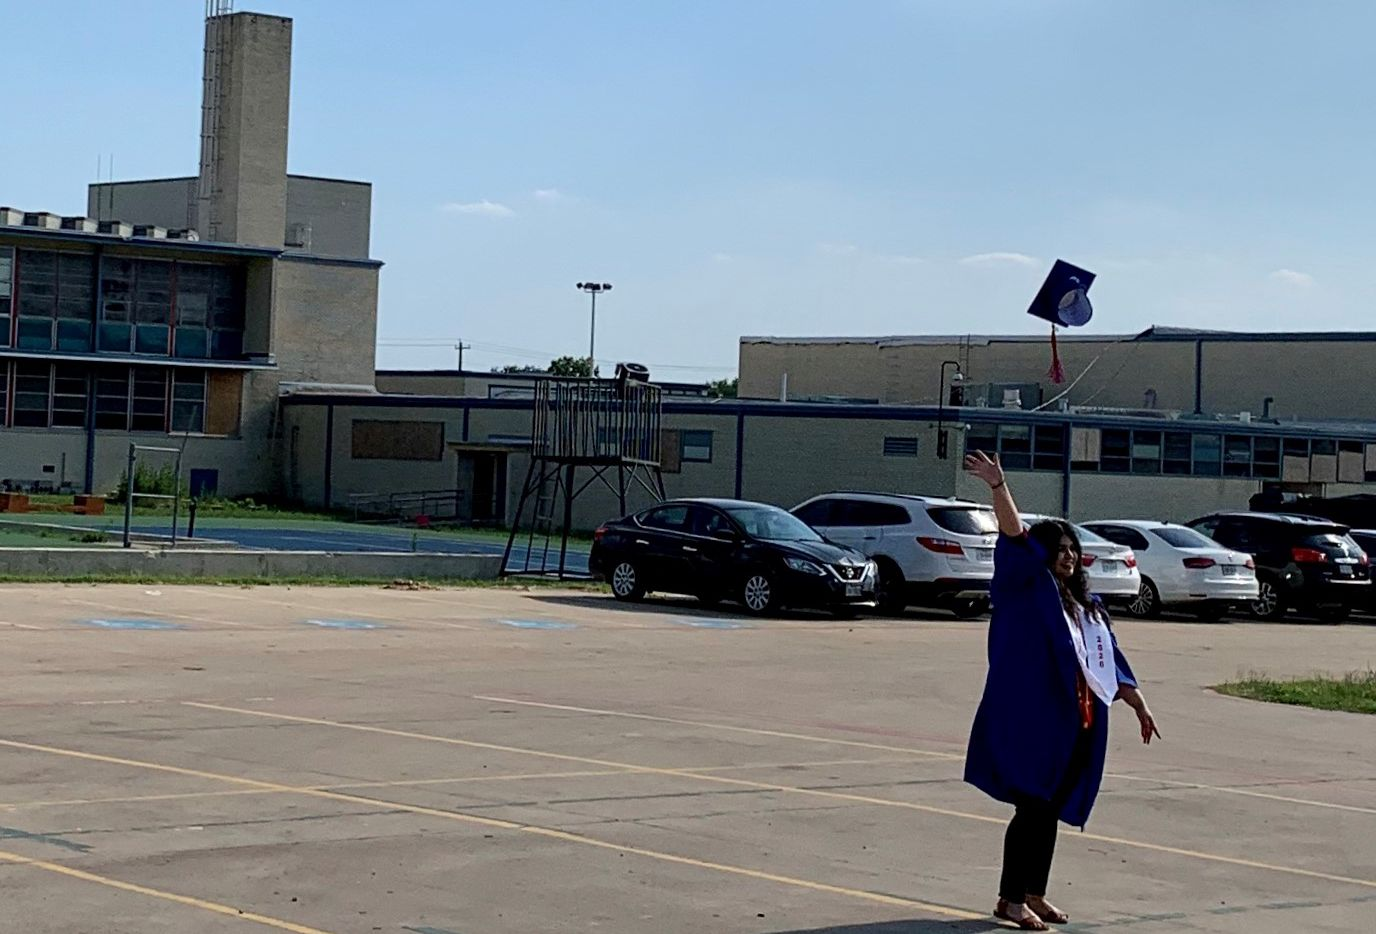 A young woman throws her cap into the air after a socially distanced graduation celebration at Thomas Jefferson High School on May 19, 2020.